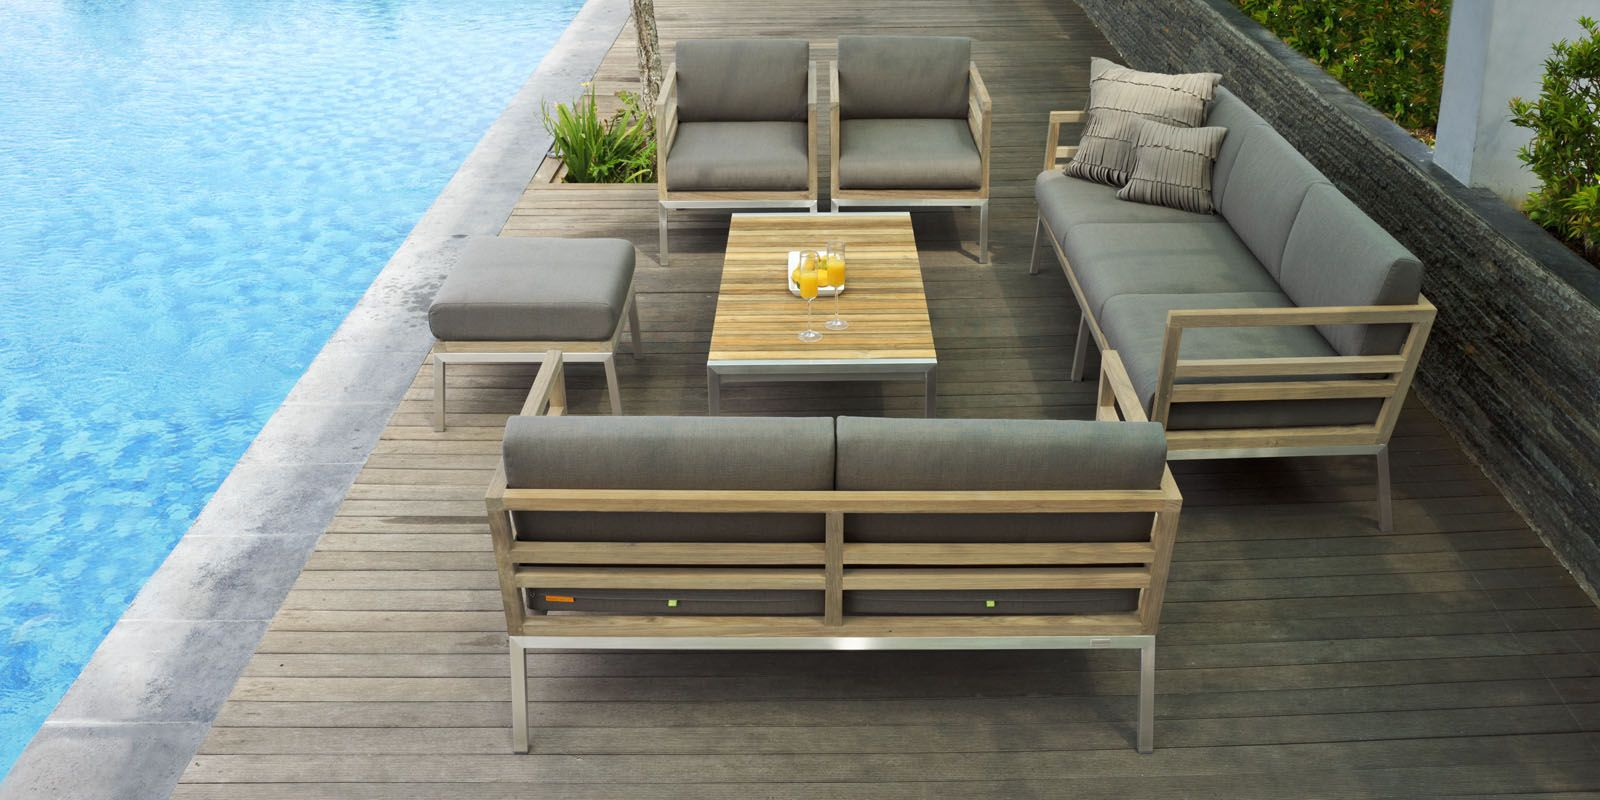 The best indoor teak furniture modern wood furniture kl supplier manufacturer prices teak wood store in shah alam selangor kuala lumpur malaysia